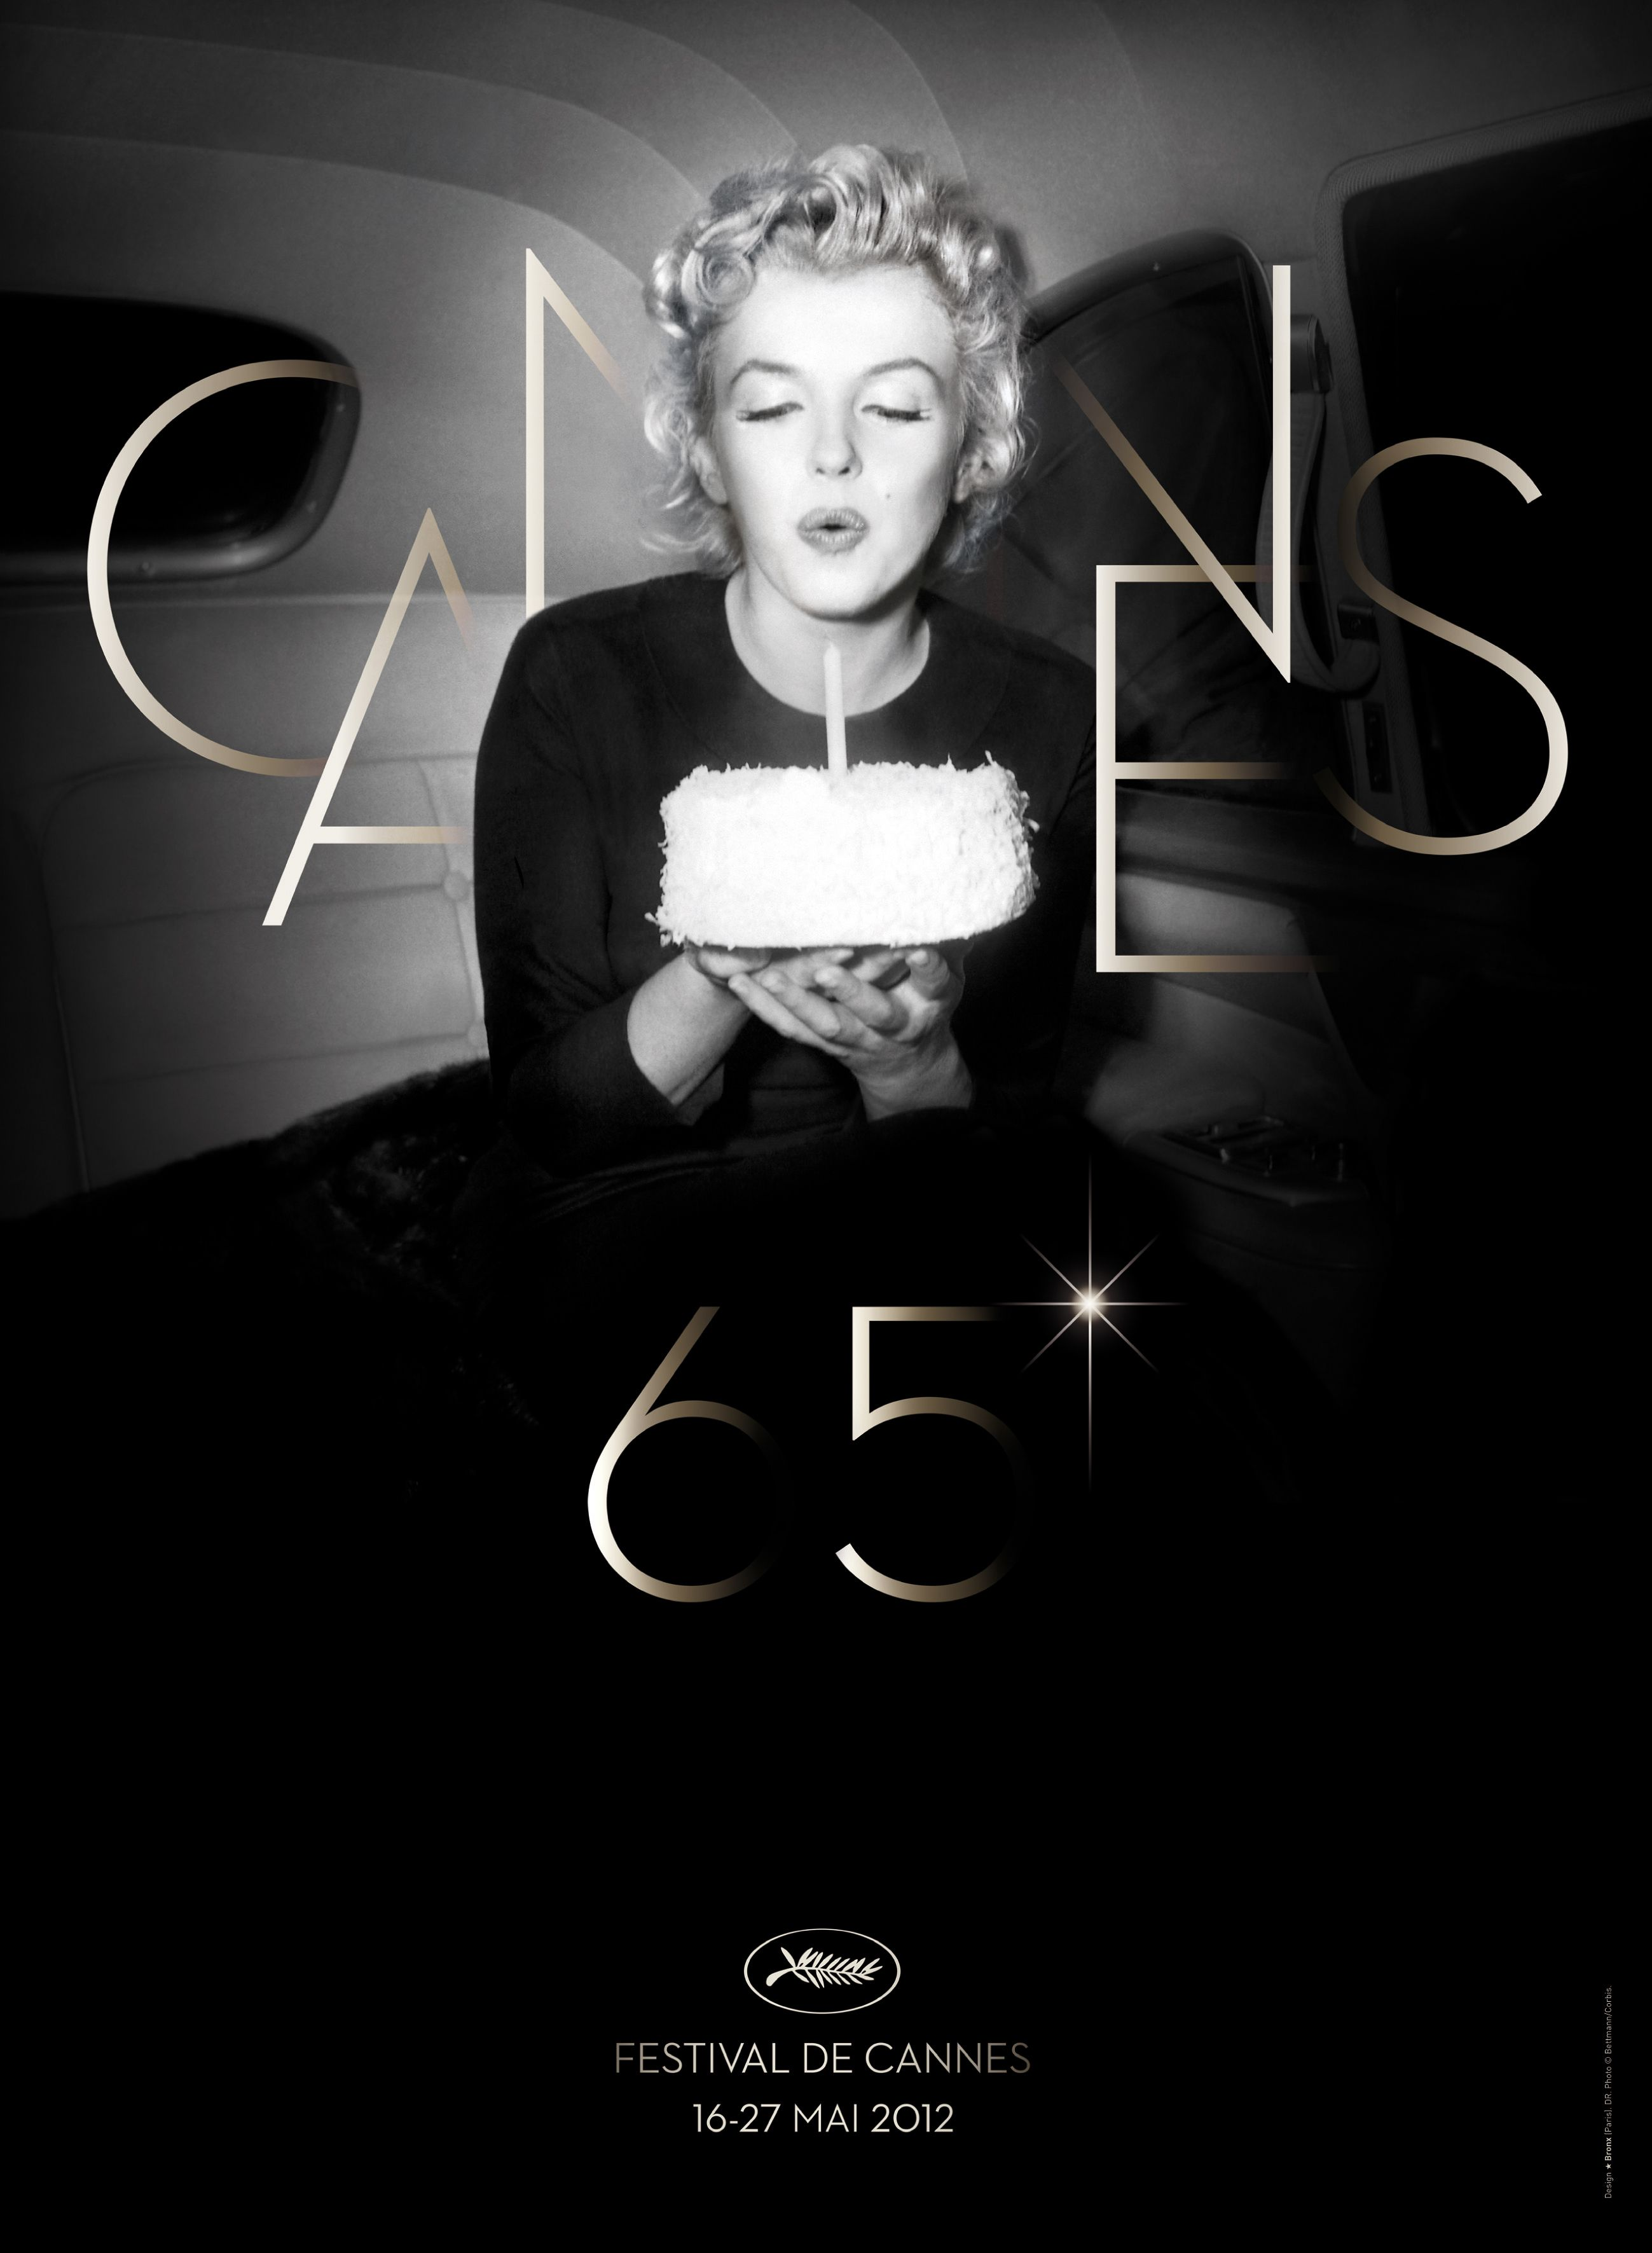 65 years Cannes - 50 years Marylin